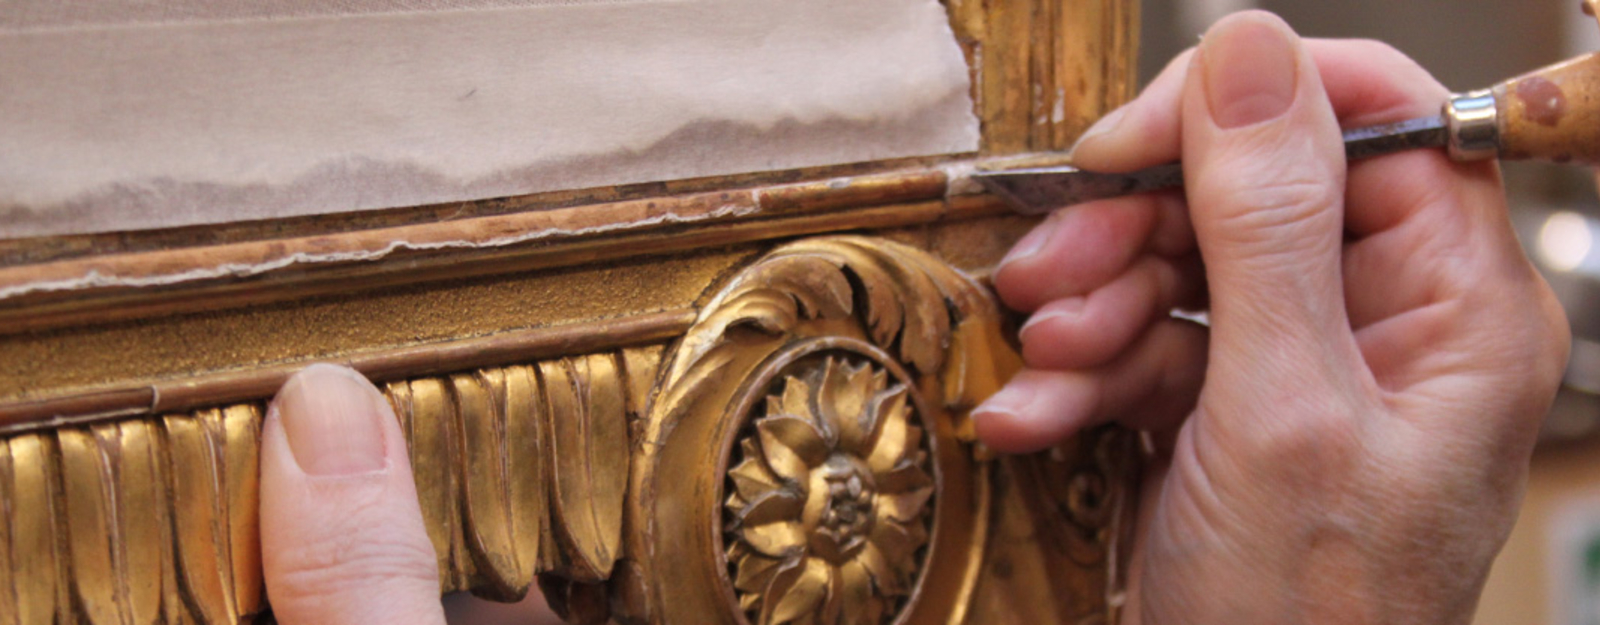 Chair being worked on in the gilding studio